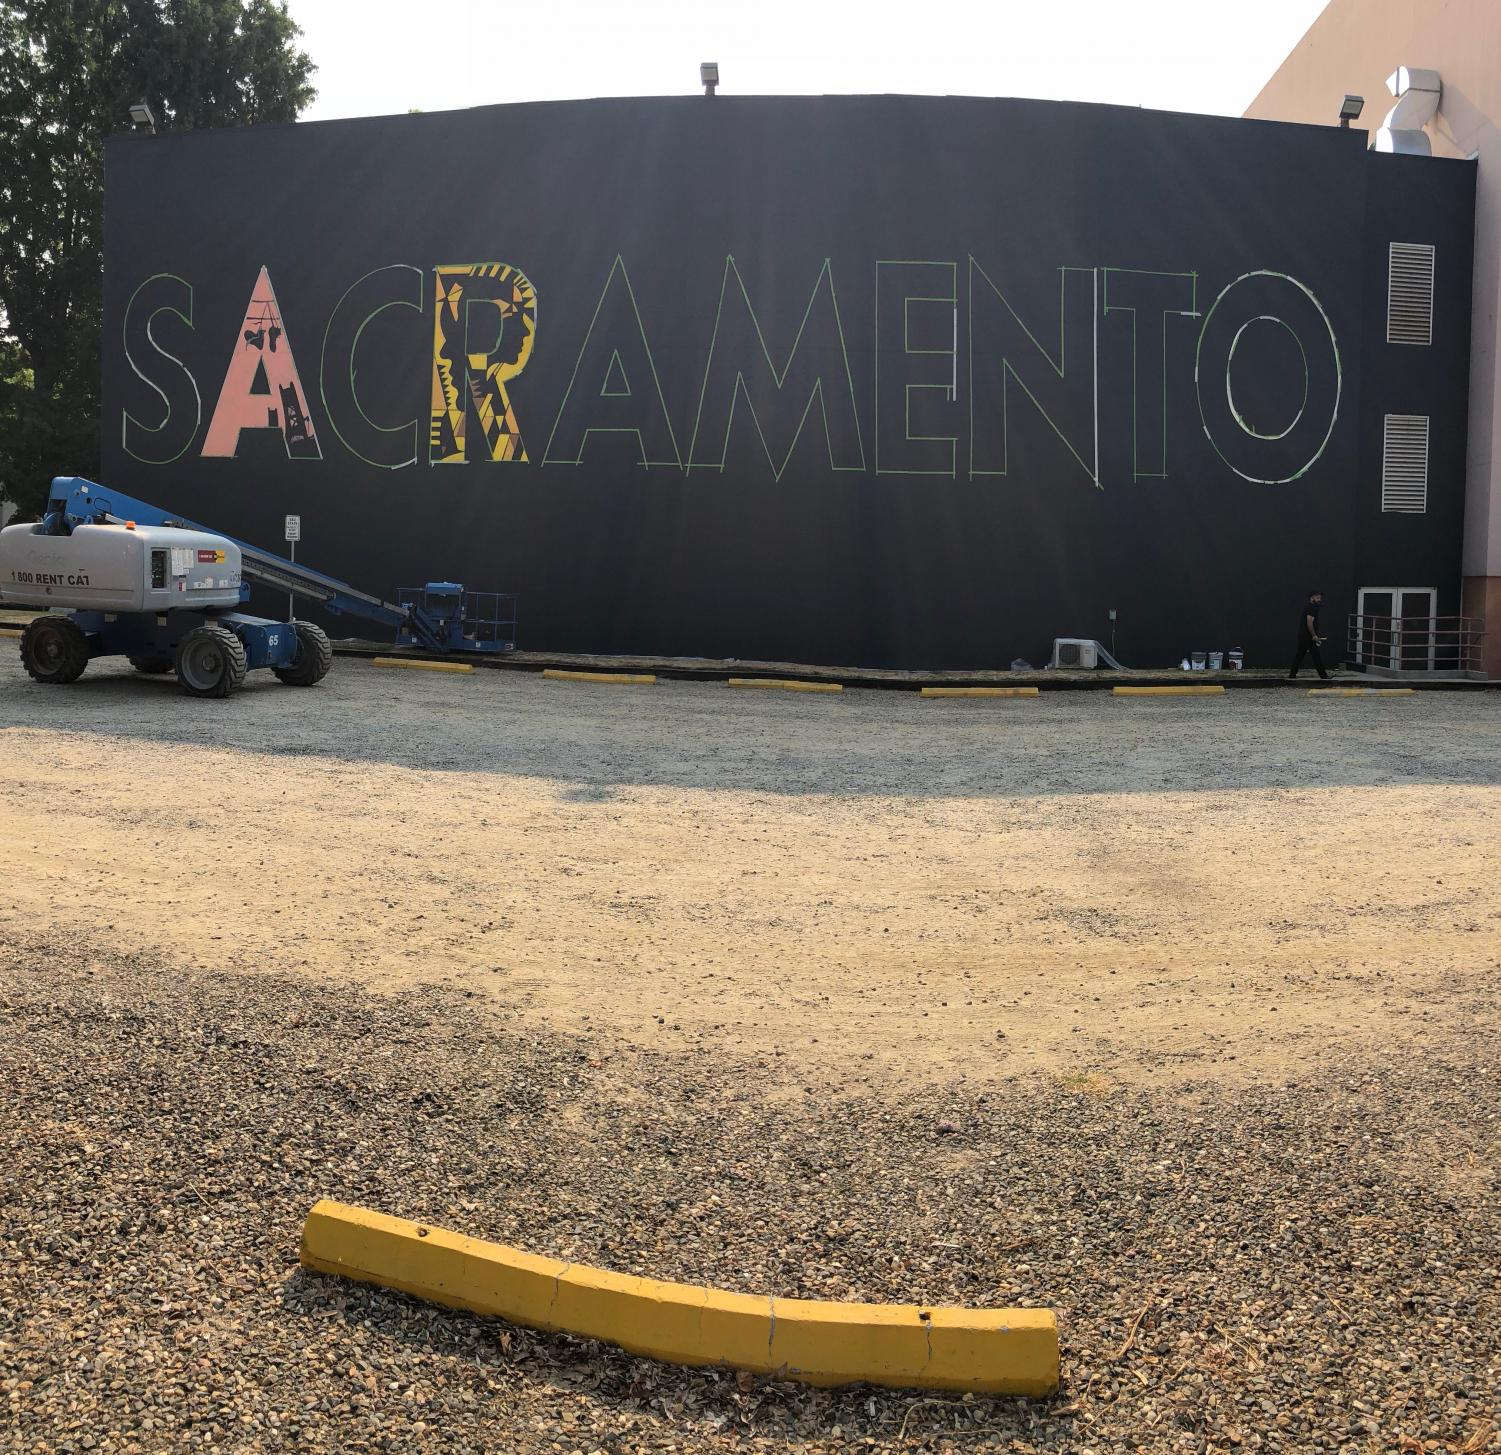 Raphael Delgado and nine other artists are completing this 'SACRAMENTO' mural on the side of Shasta Hall as part of the Wide Open Walls art festival that is being held from Aug. 9-19.